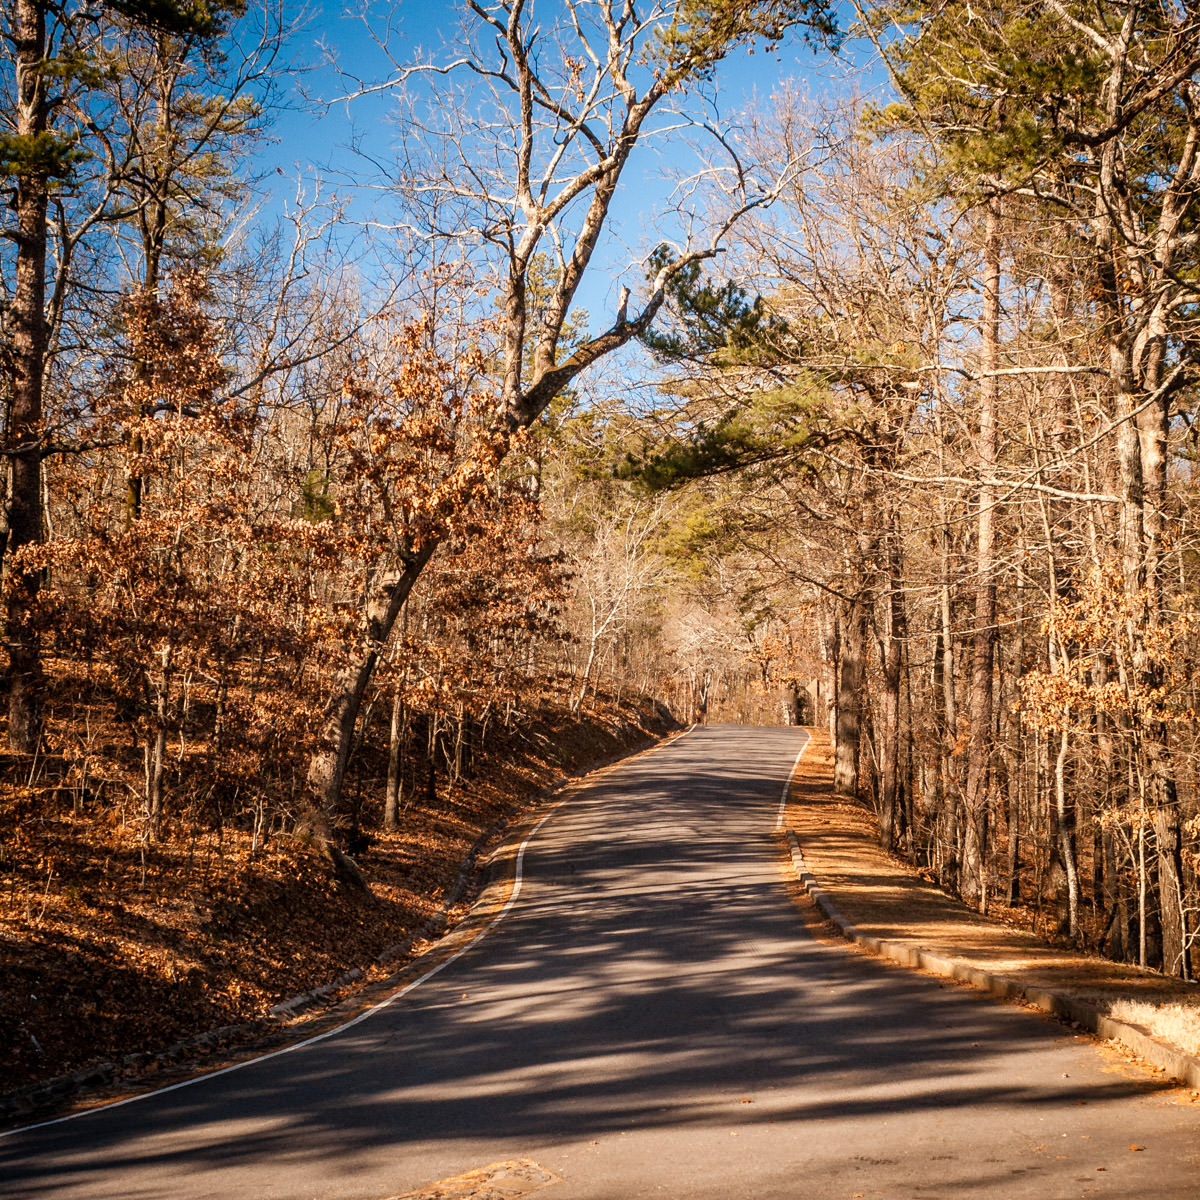 A road winds through the trees atop a hill near Hot Springs, Arkansas.